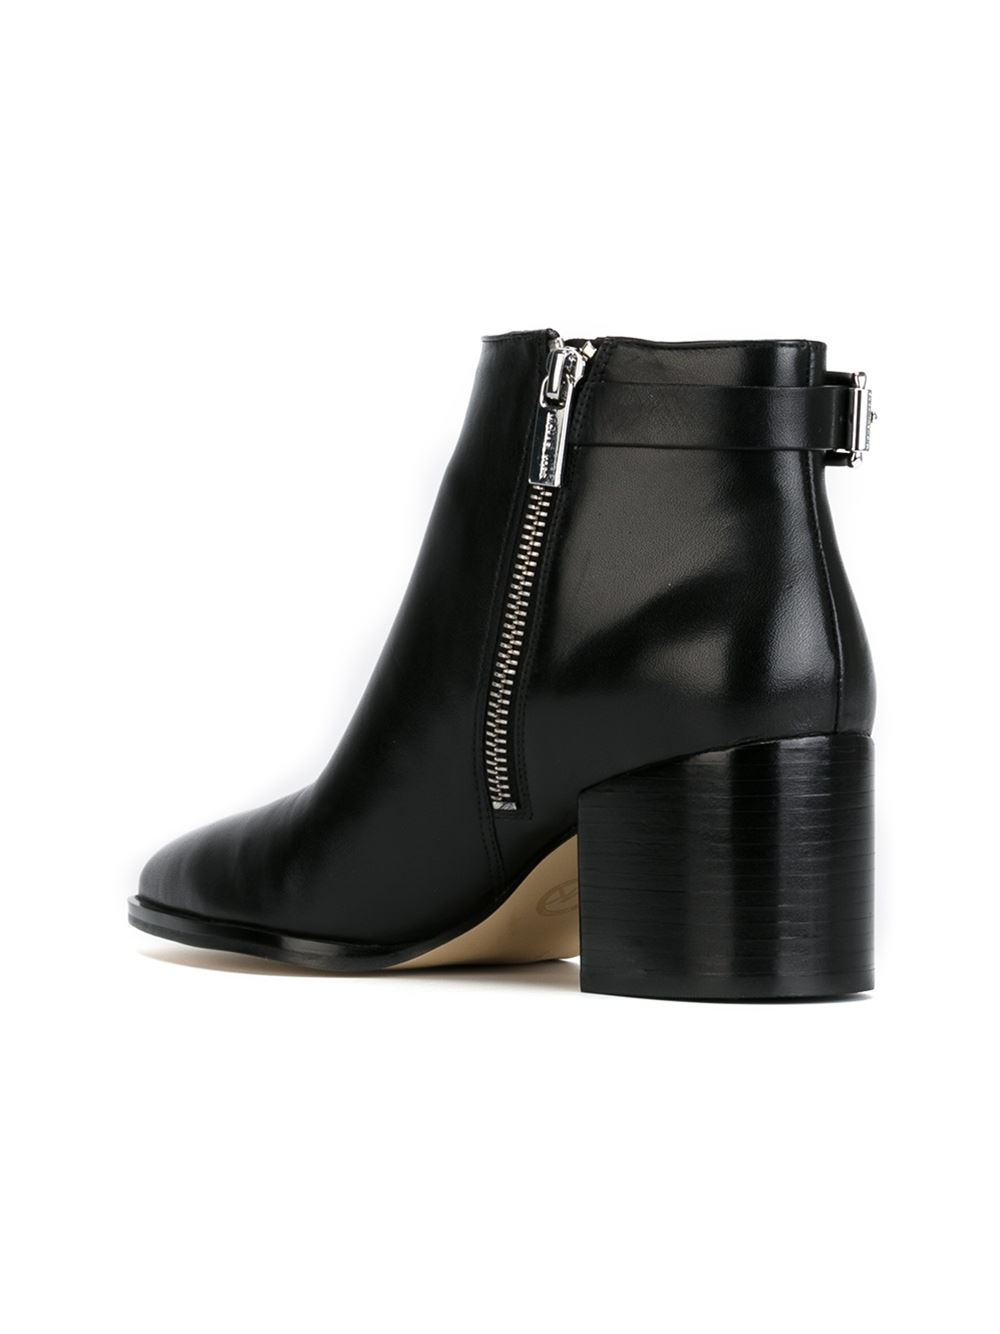 MICHAEL Michael Kors Leather Buckle Detail Ankle Boots in Black